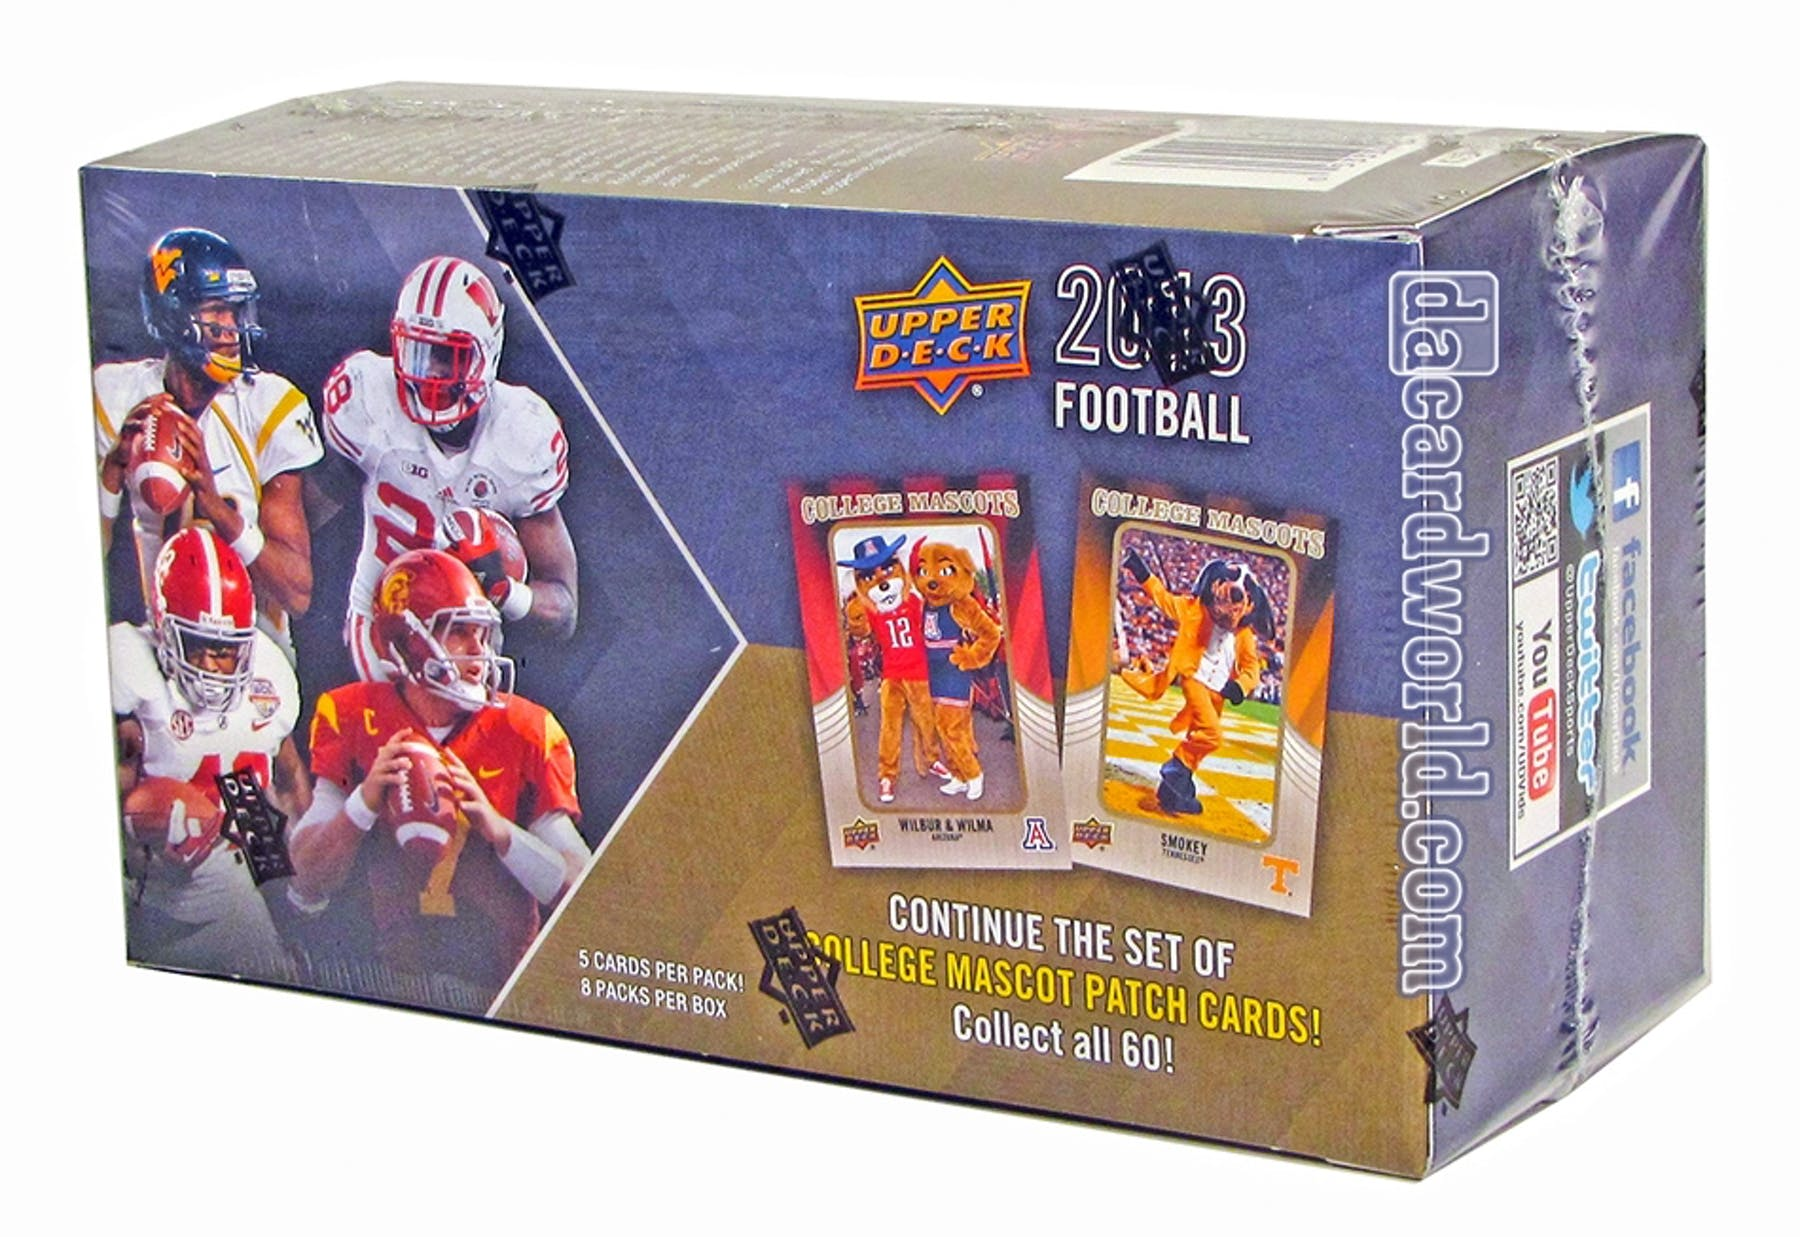 2013 upper deck football 8 pack box 1 bonus rookie for 2 box auto con stanza bonus